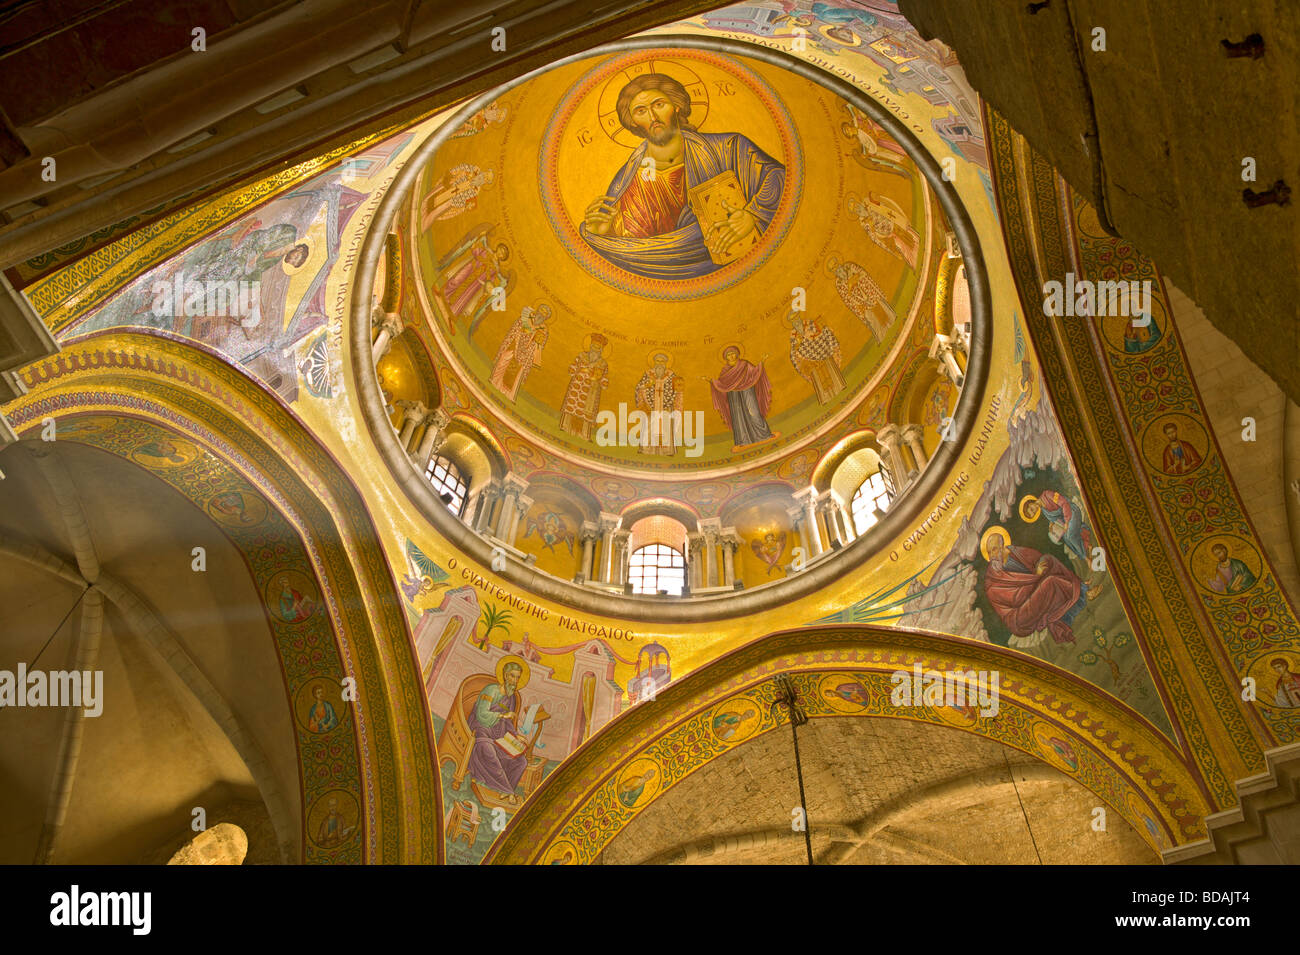 Ceiling detail of the Church of the Holy Sepulchre in Jerusalem. The site is venerated as Calvary where Jesus was - Stock Image